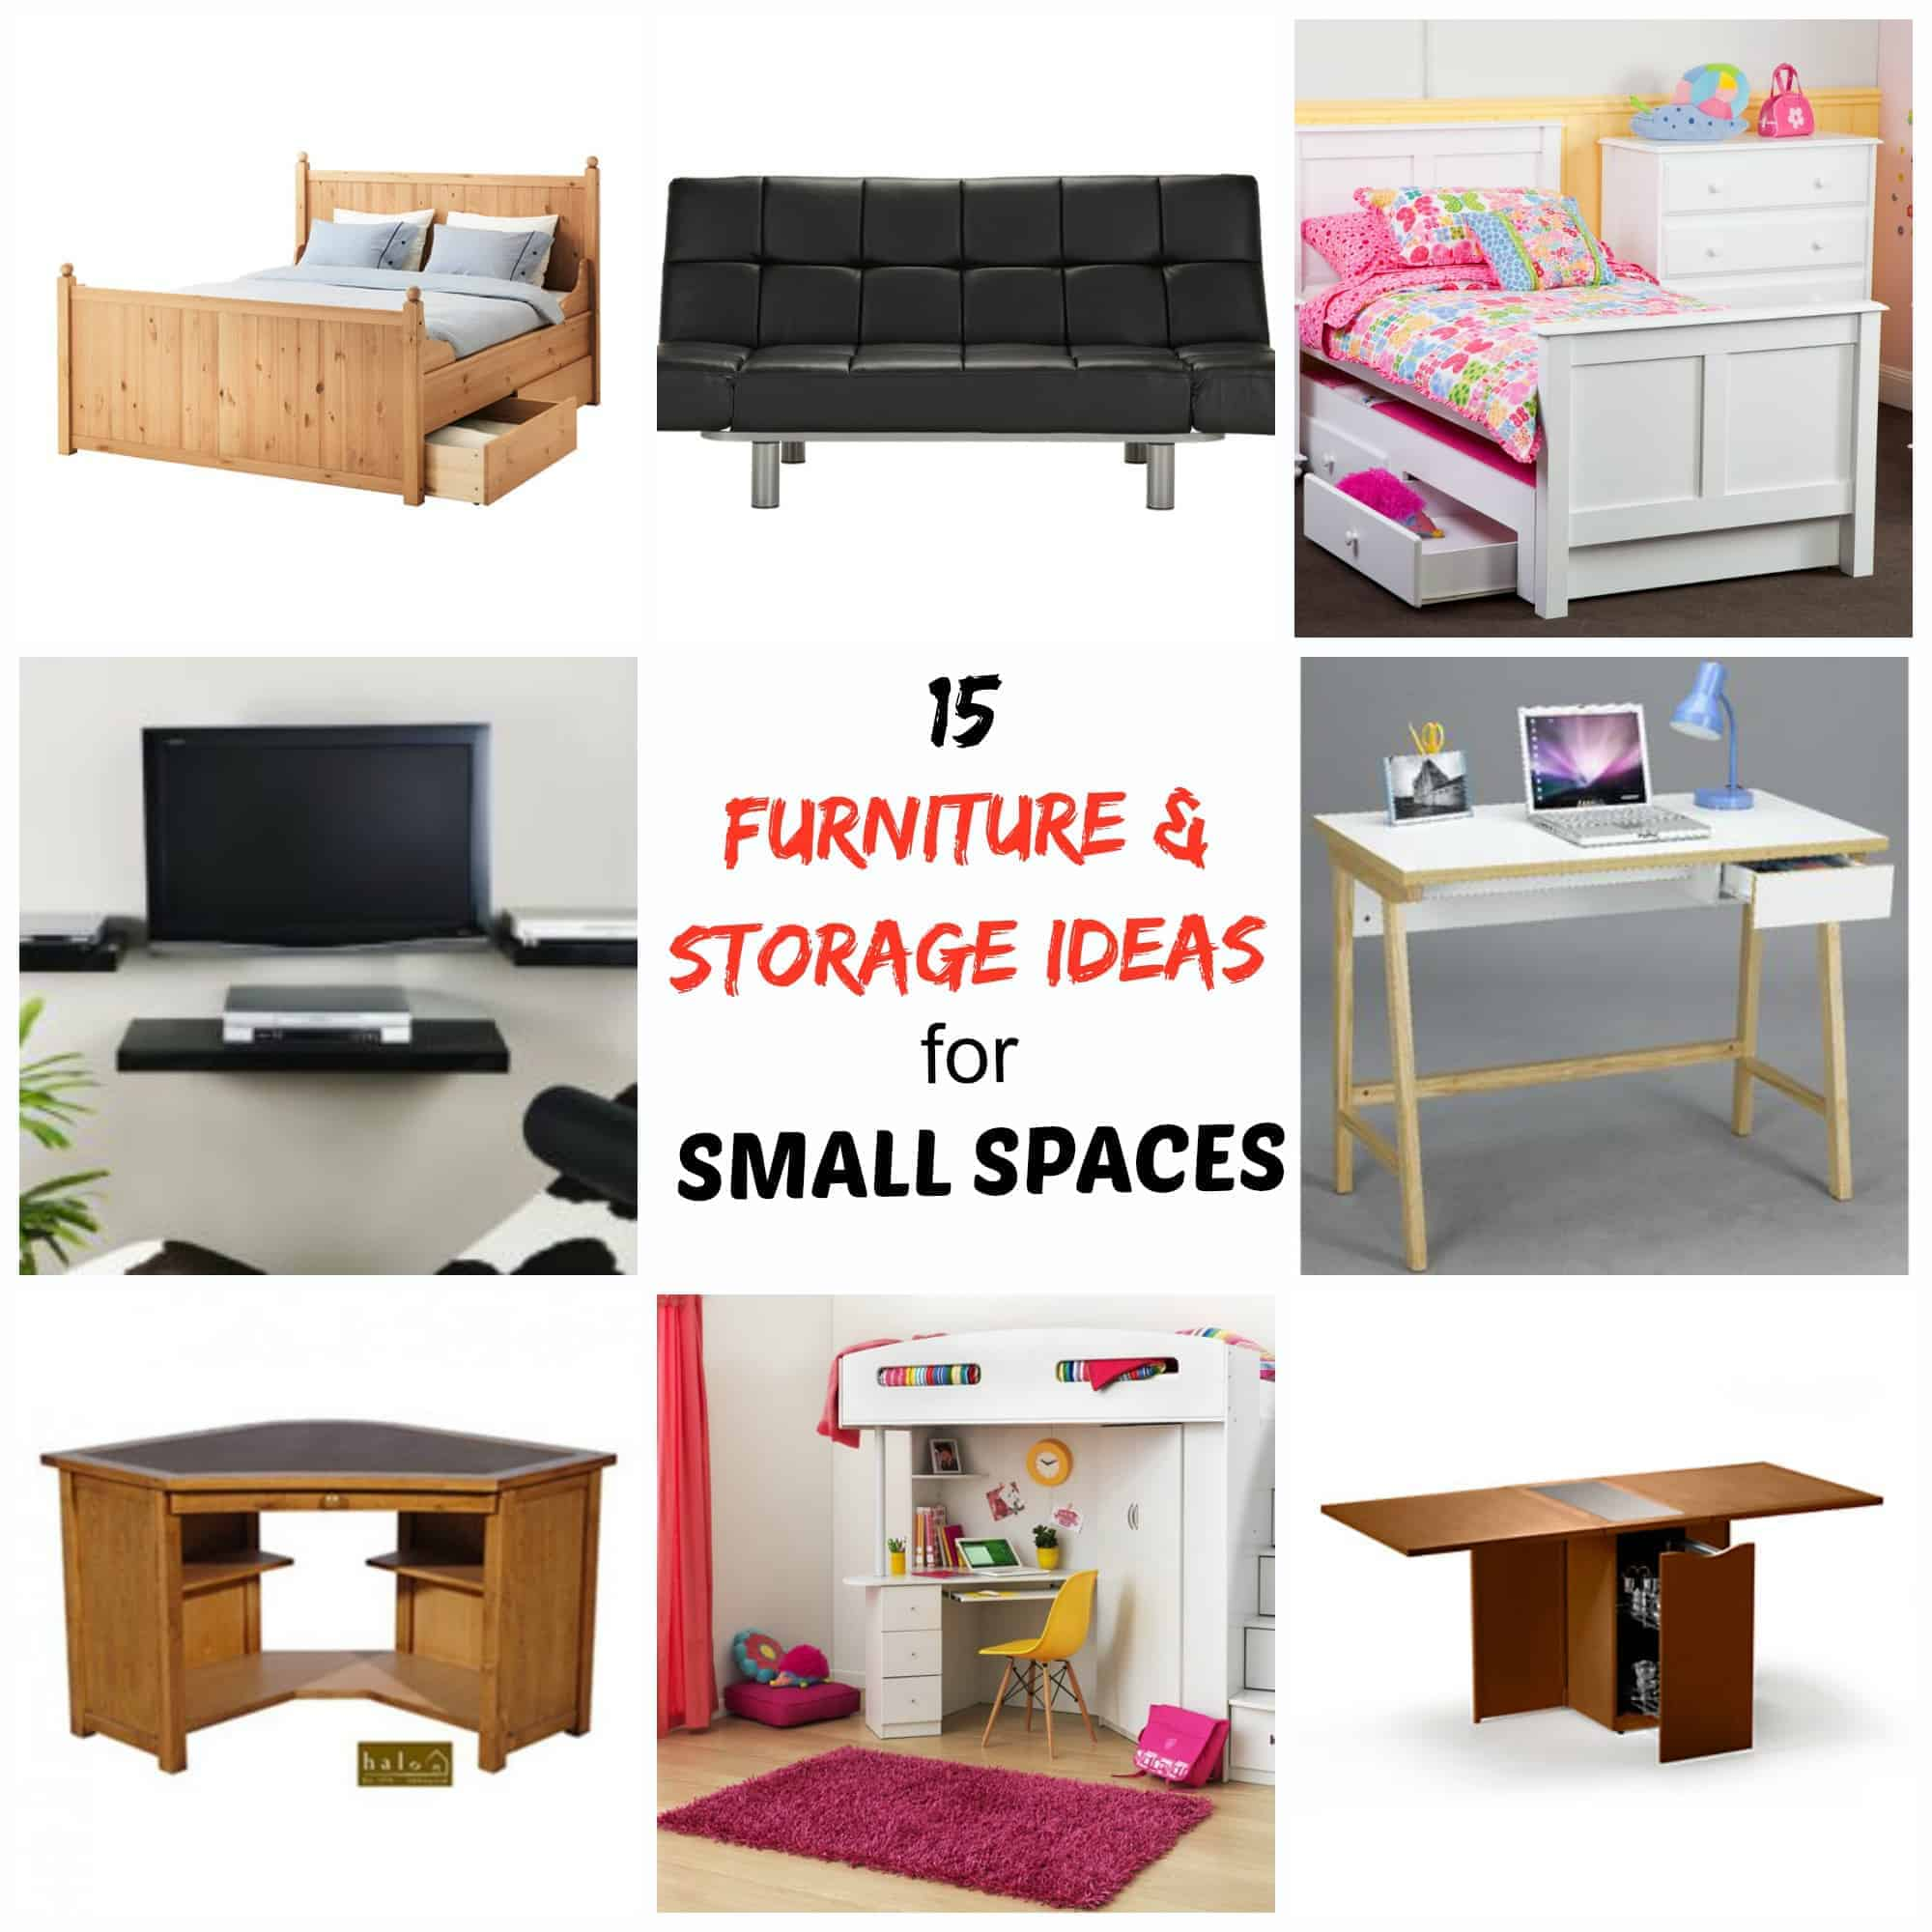 15 Furniture Storage Ideas For Small Spaces Simplify Create Inspire